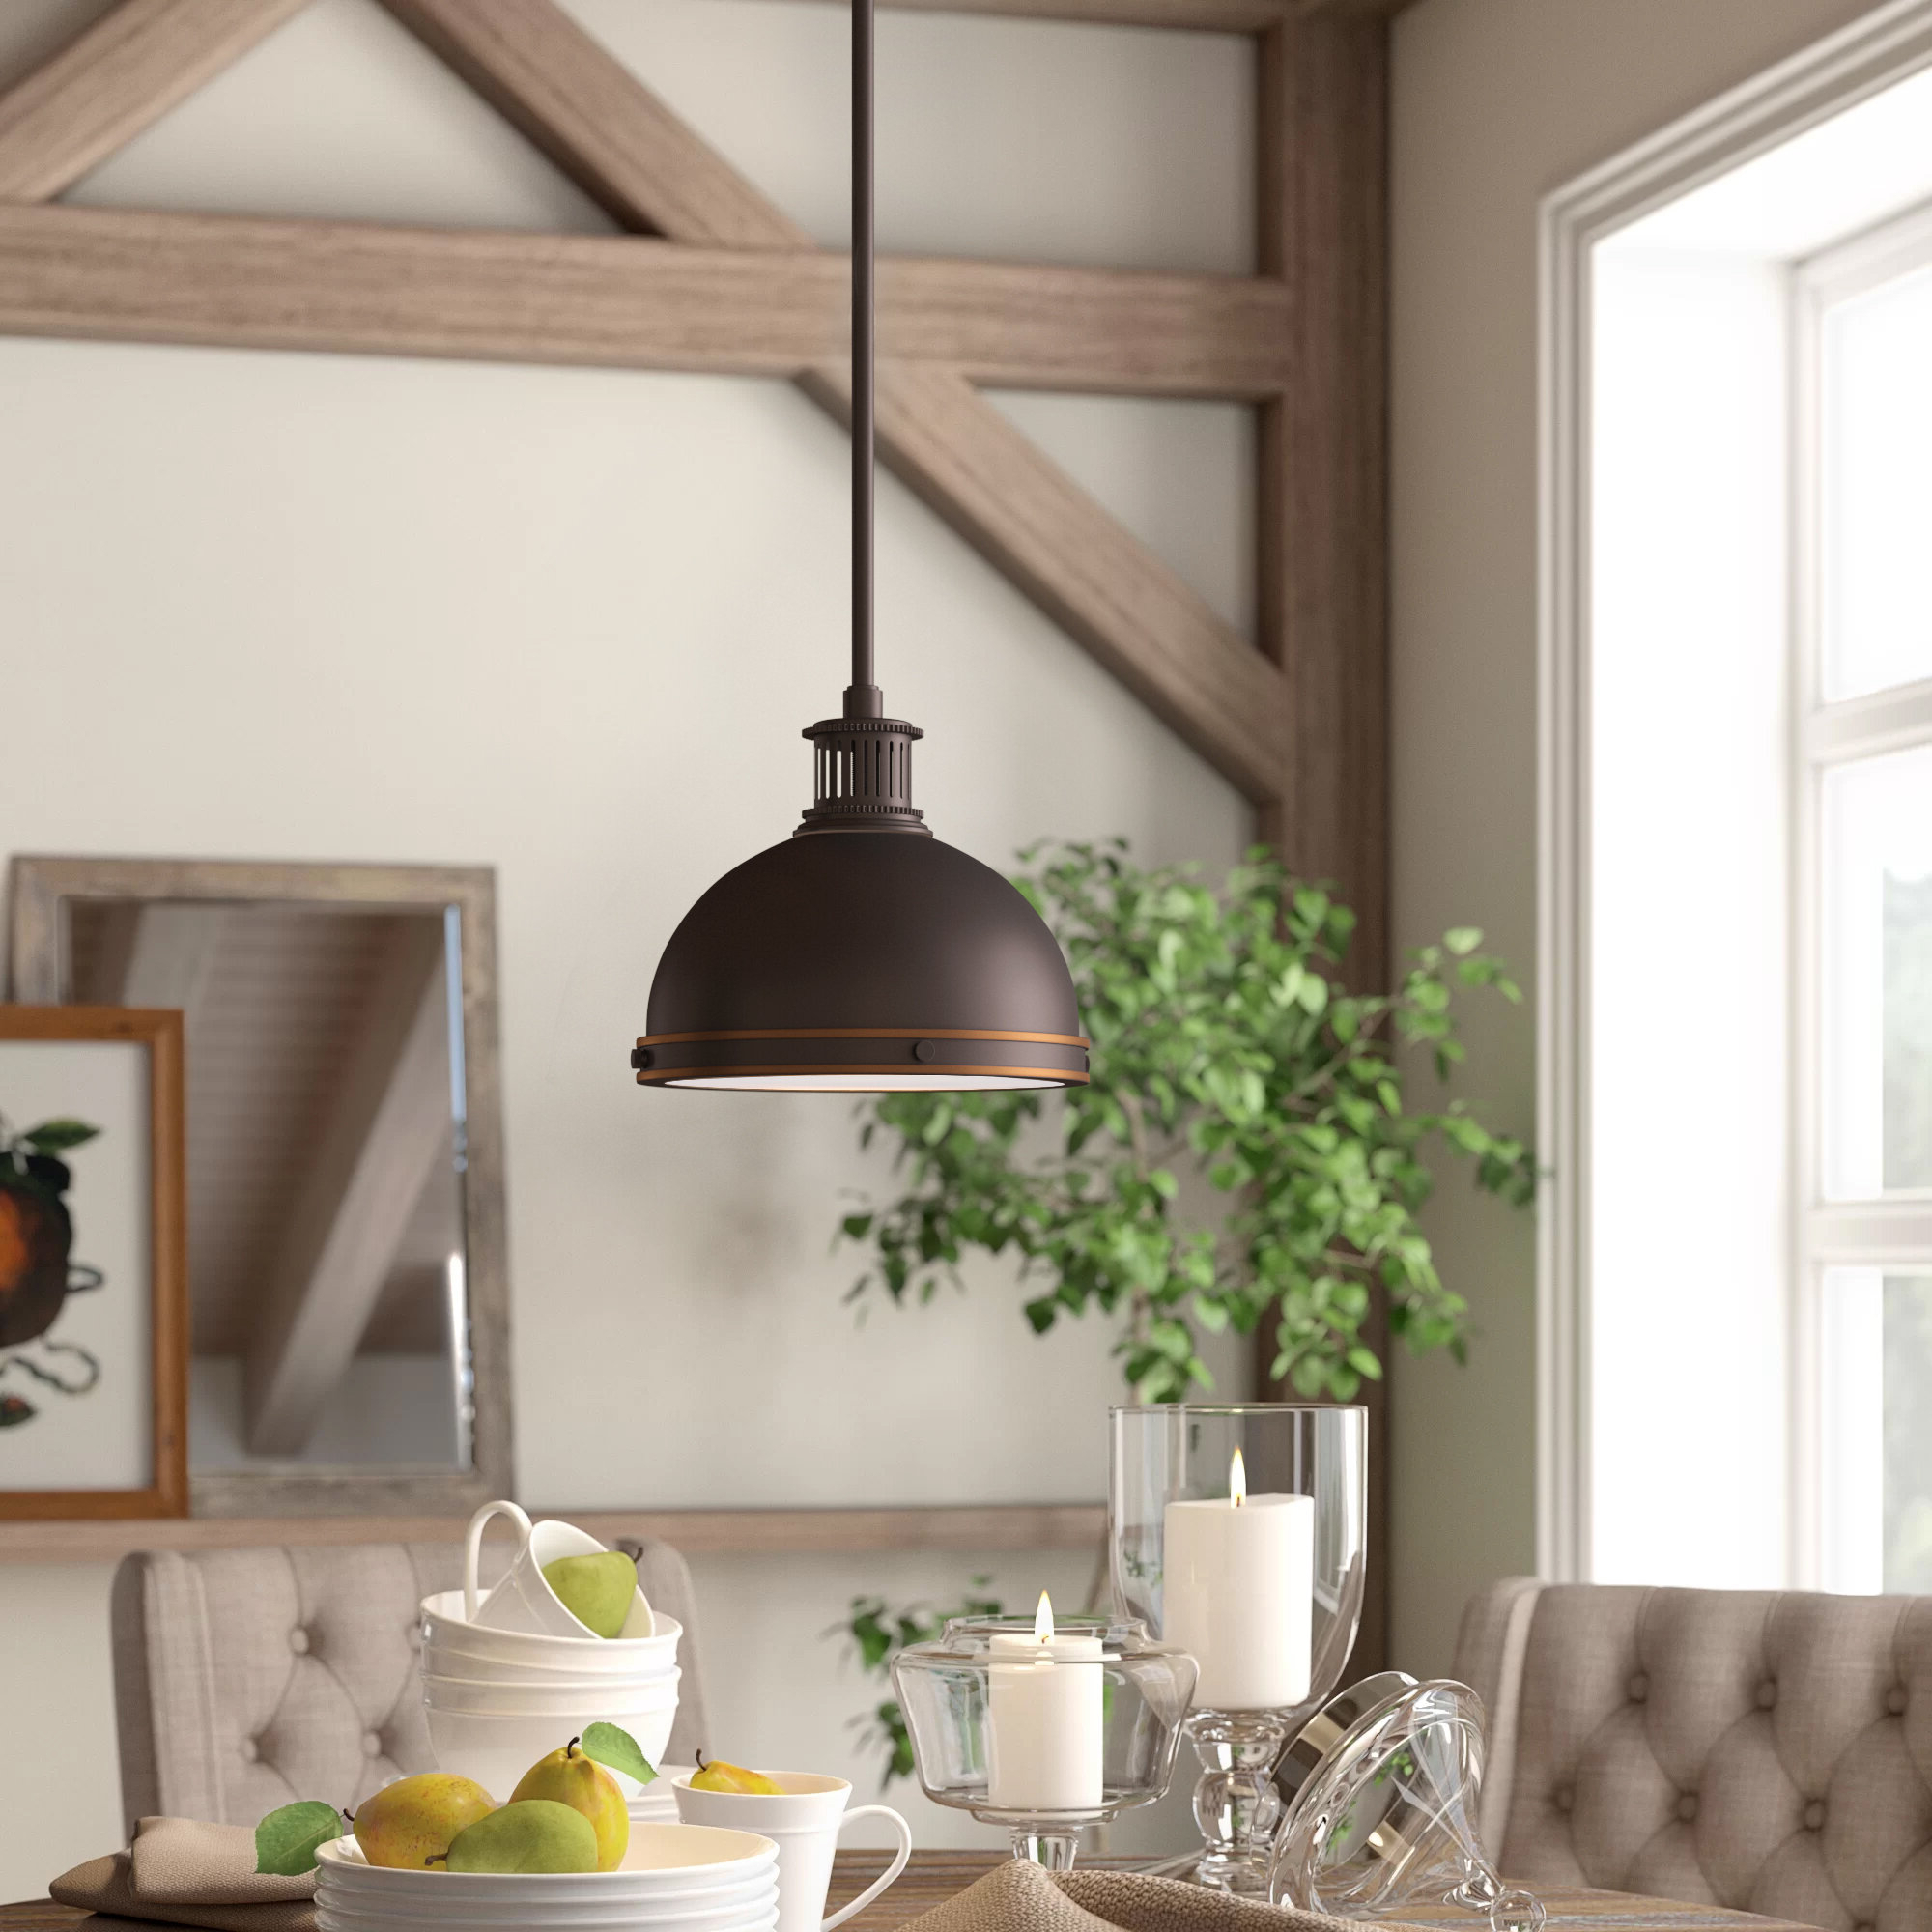 Widely Used Ninette 1 Light Dome Pendants Throughout Orchard Hill 1 Light Led Dome Pendant (View 20 of 20)